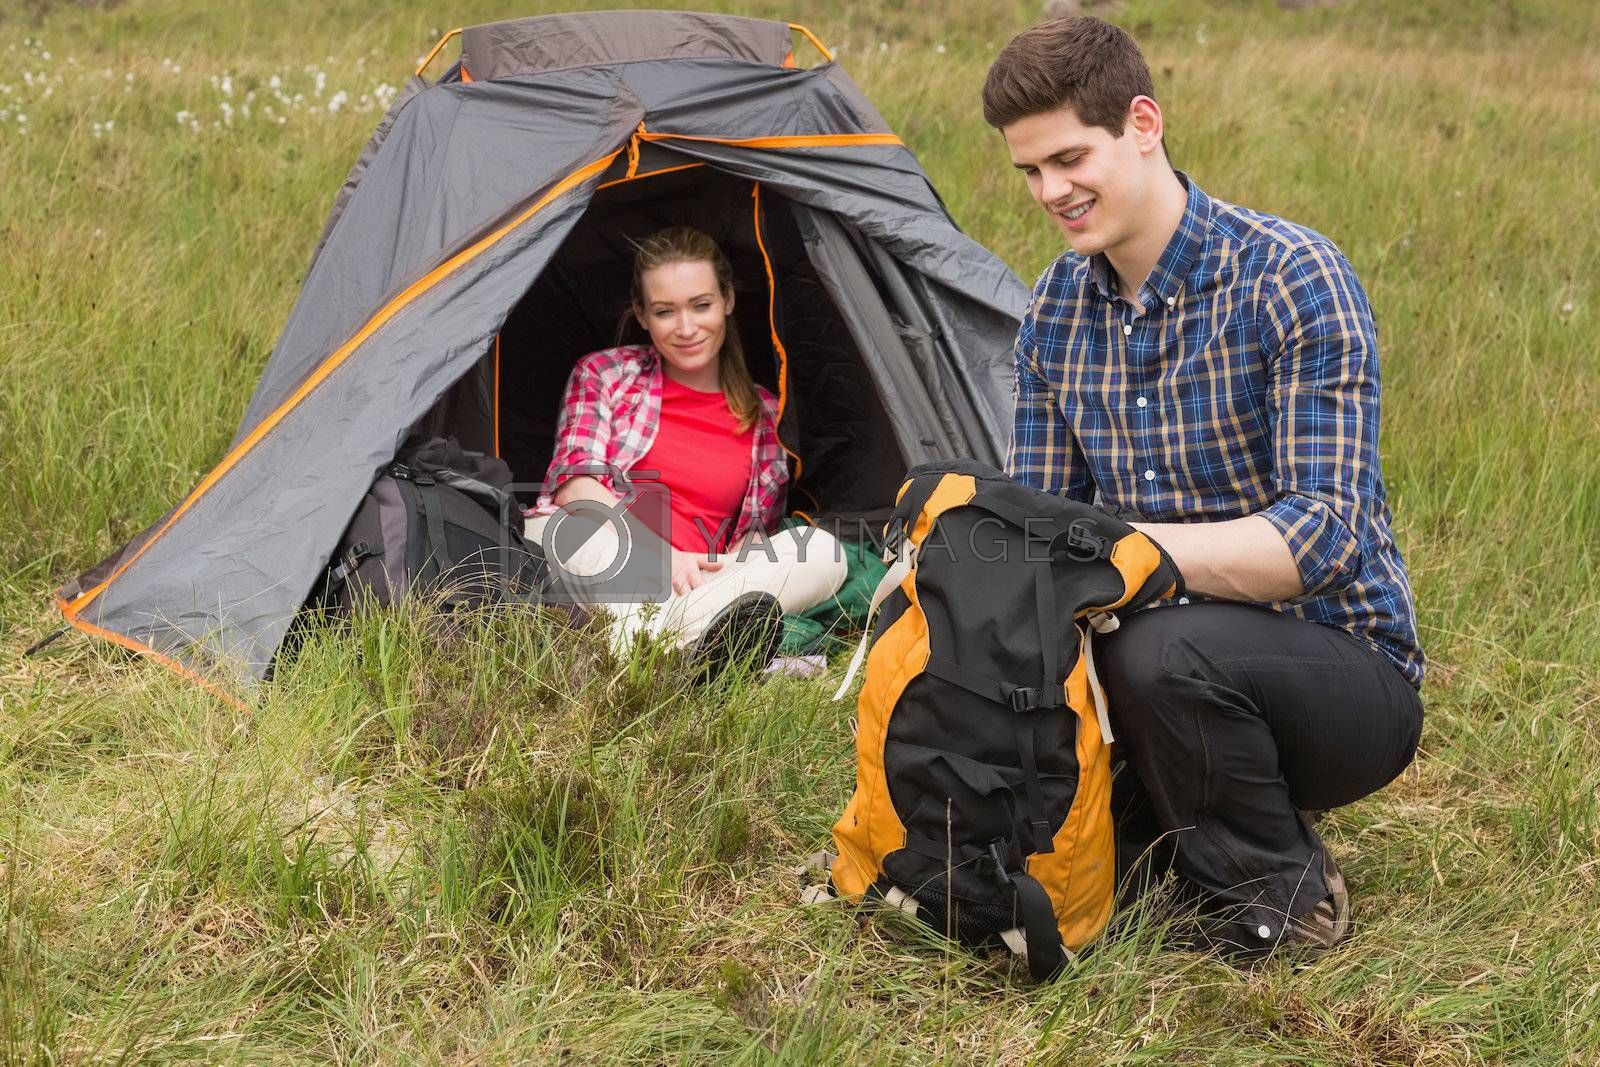 Happy man packing backpack while girlfriend sits in tent by Wavebreakmedia